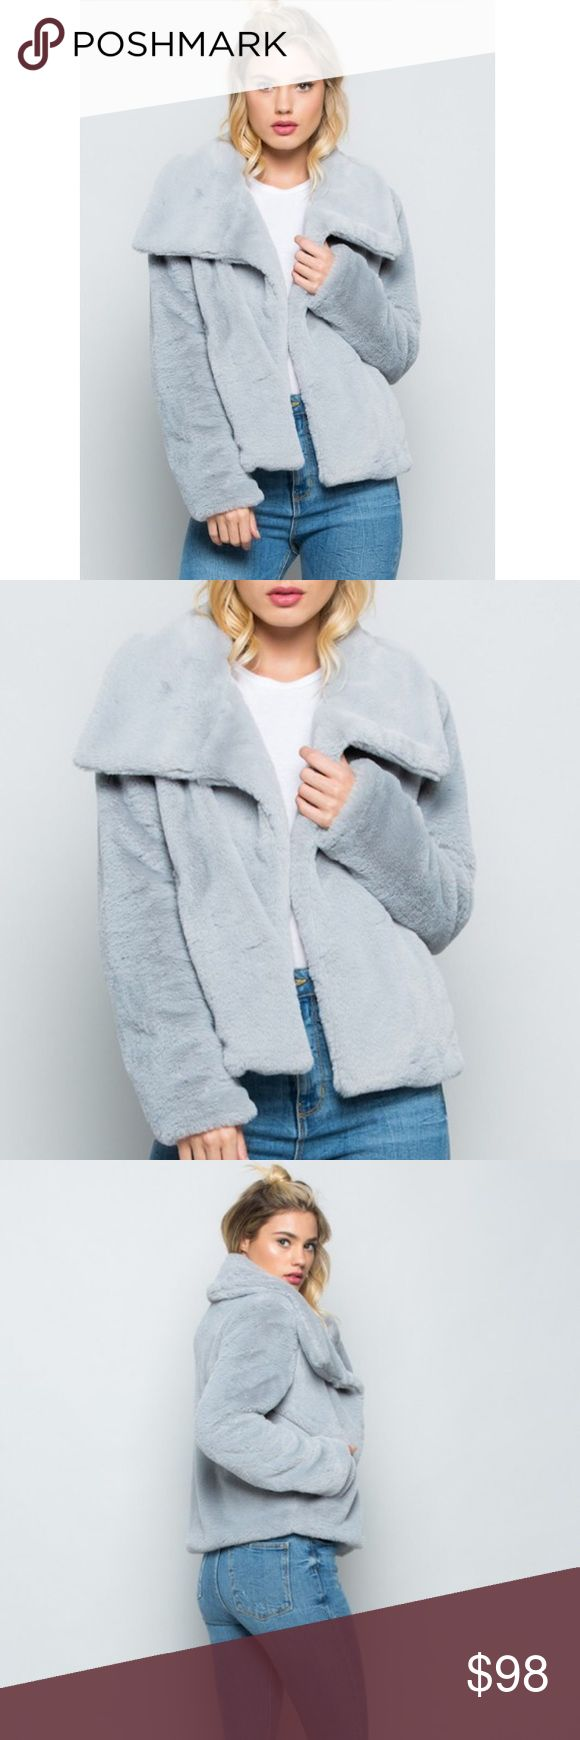 """🆕Vanessa Gray Faux Fur Jacket New Boutique Item. The Vannessa Coat features a soft cozy faux fur material, gorgeous exaggerated collar, and pockets. Perfect jacket to dress up and dress down! Great faux Fur Jacket for New Years Eve! Color(s): Gray Material: 100% Polyester  Length: 24"""" Imported Jackets & Coats"""